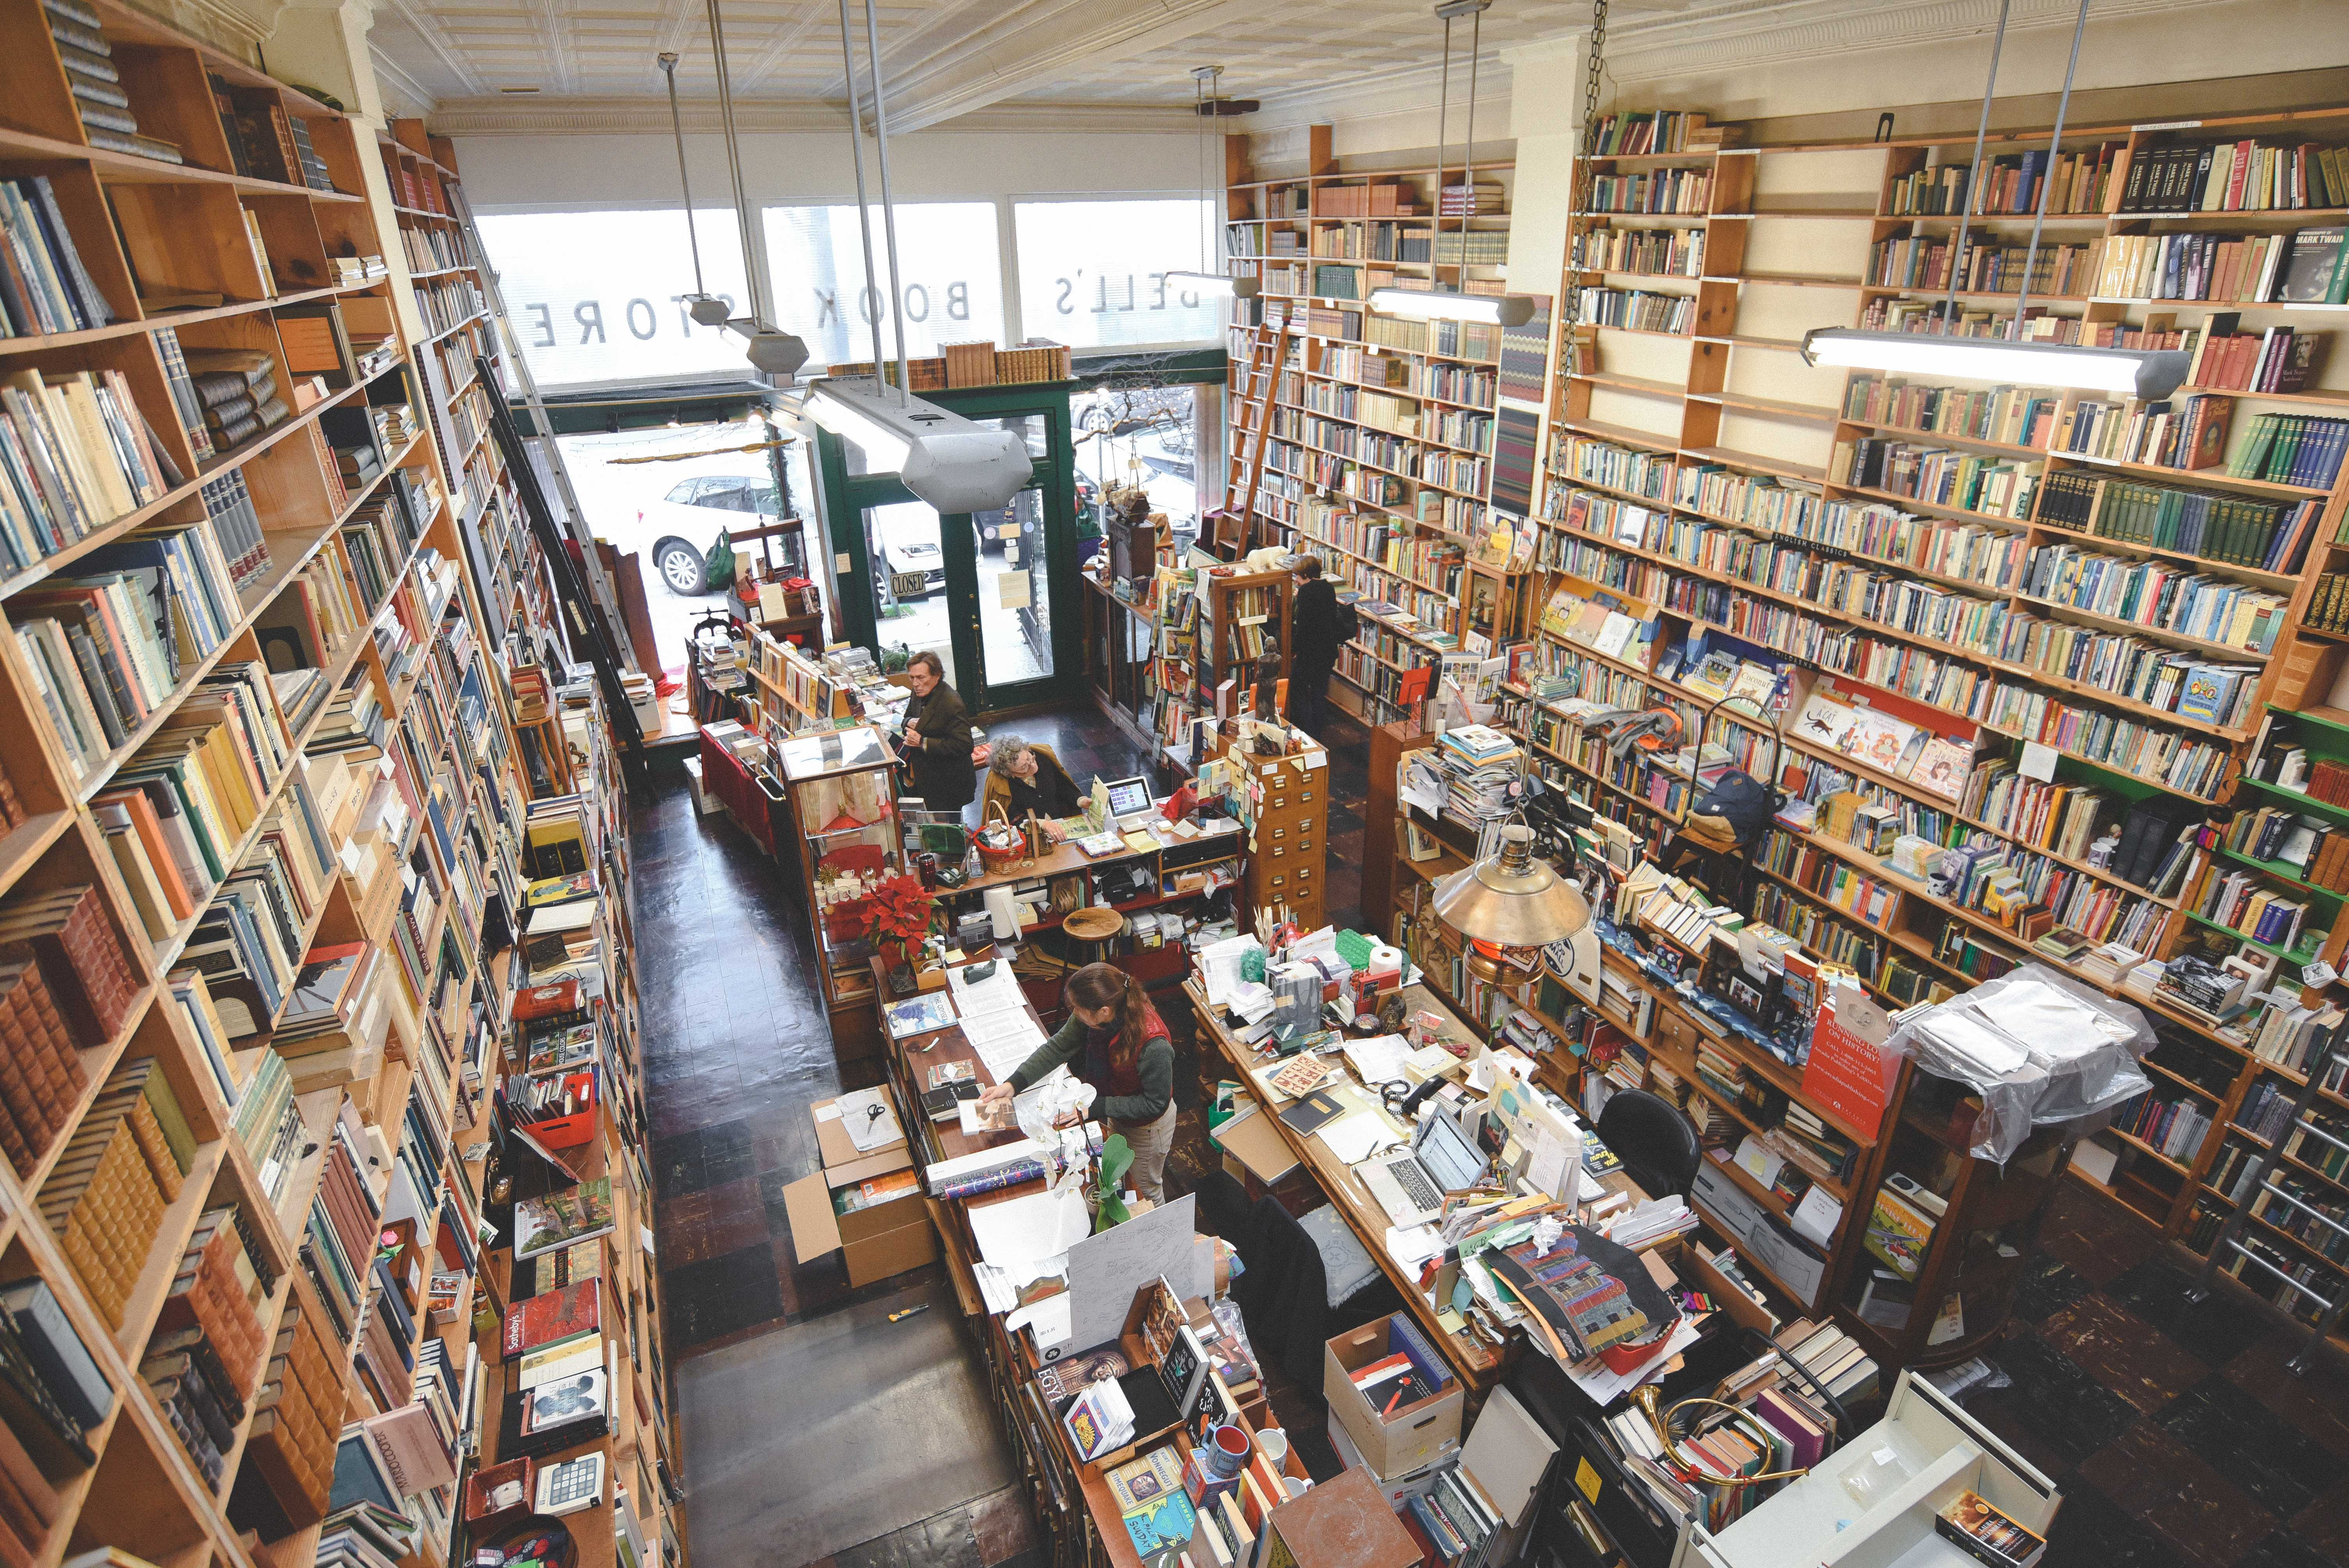 A balcony shot captures the scenery of the bookstore below. Photo by James Poe.